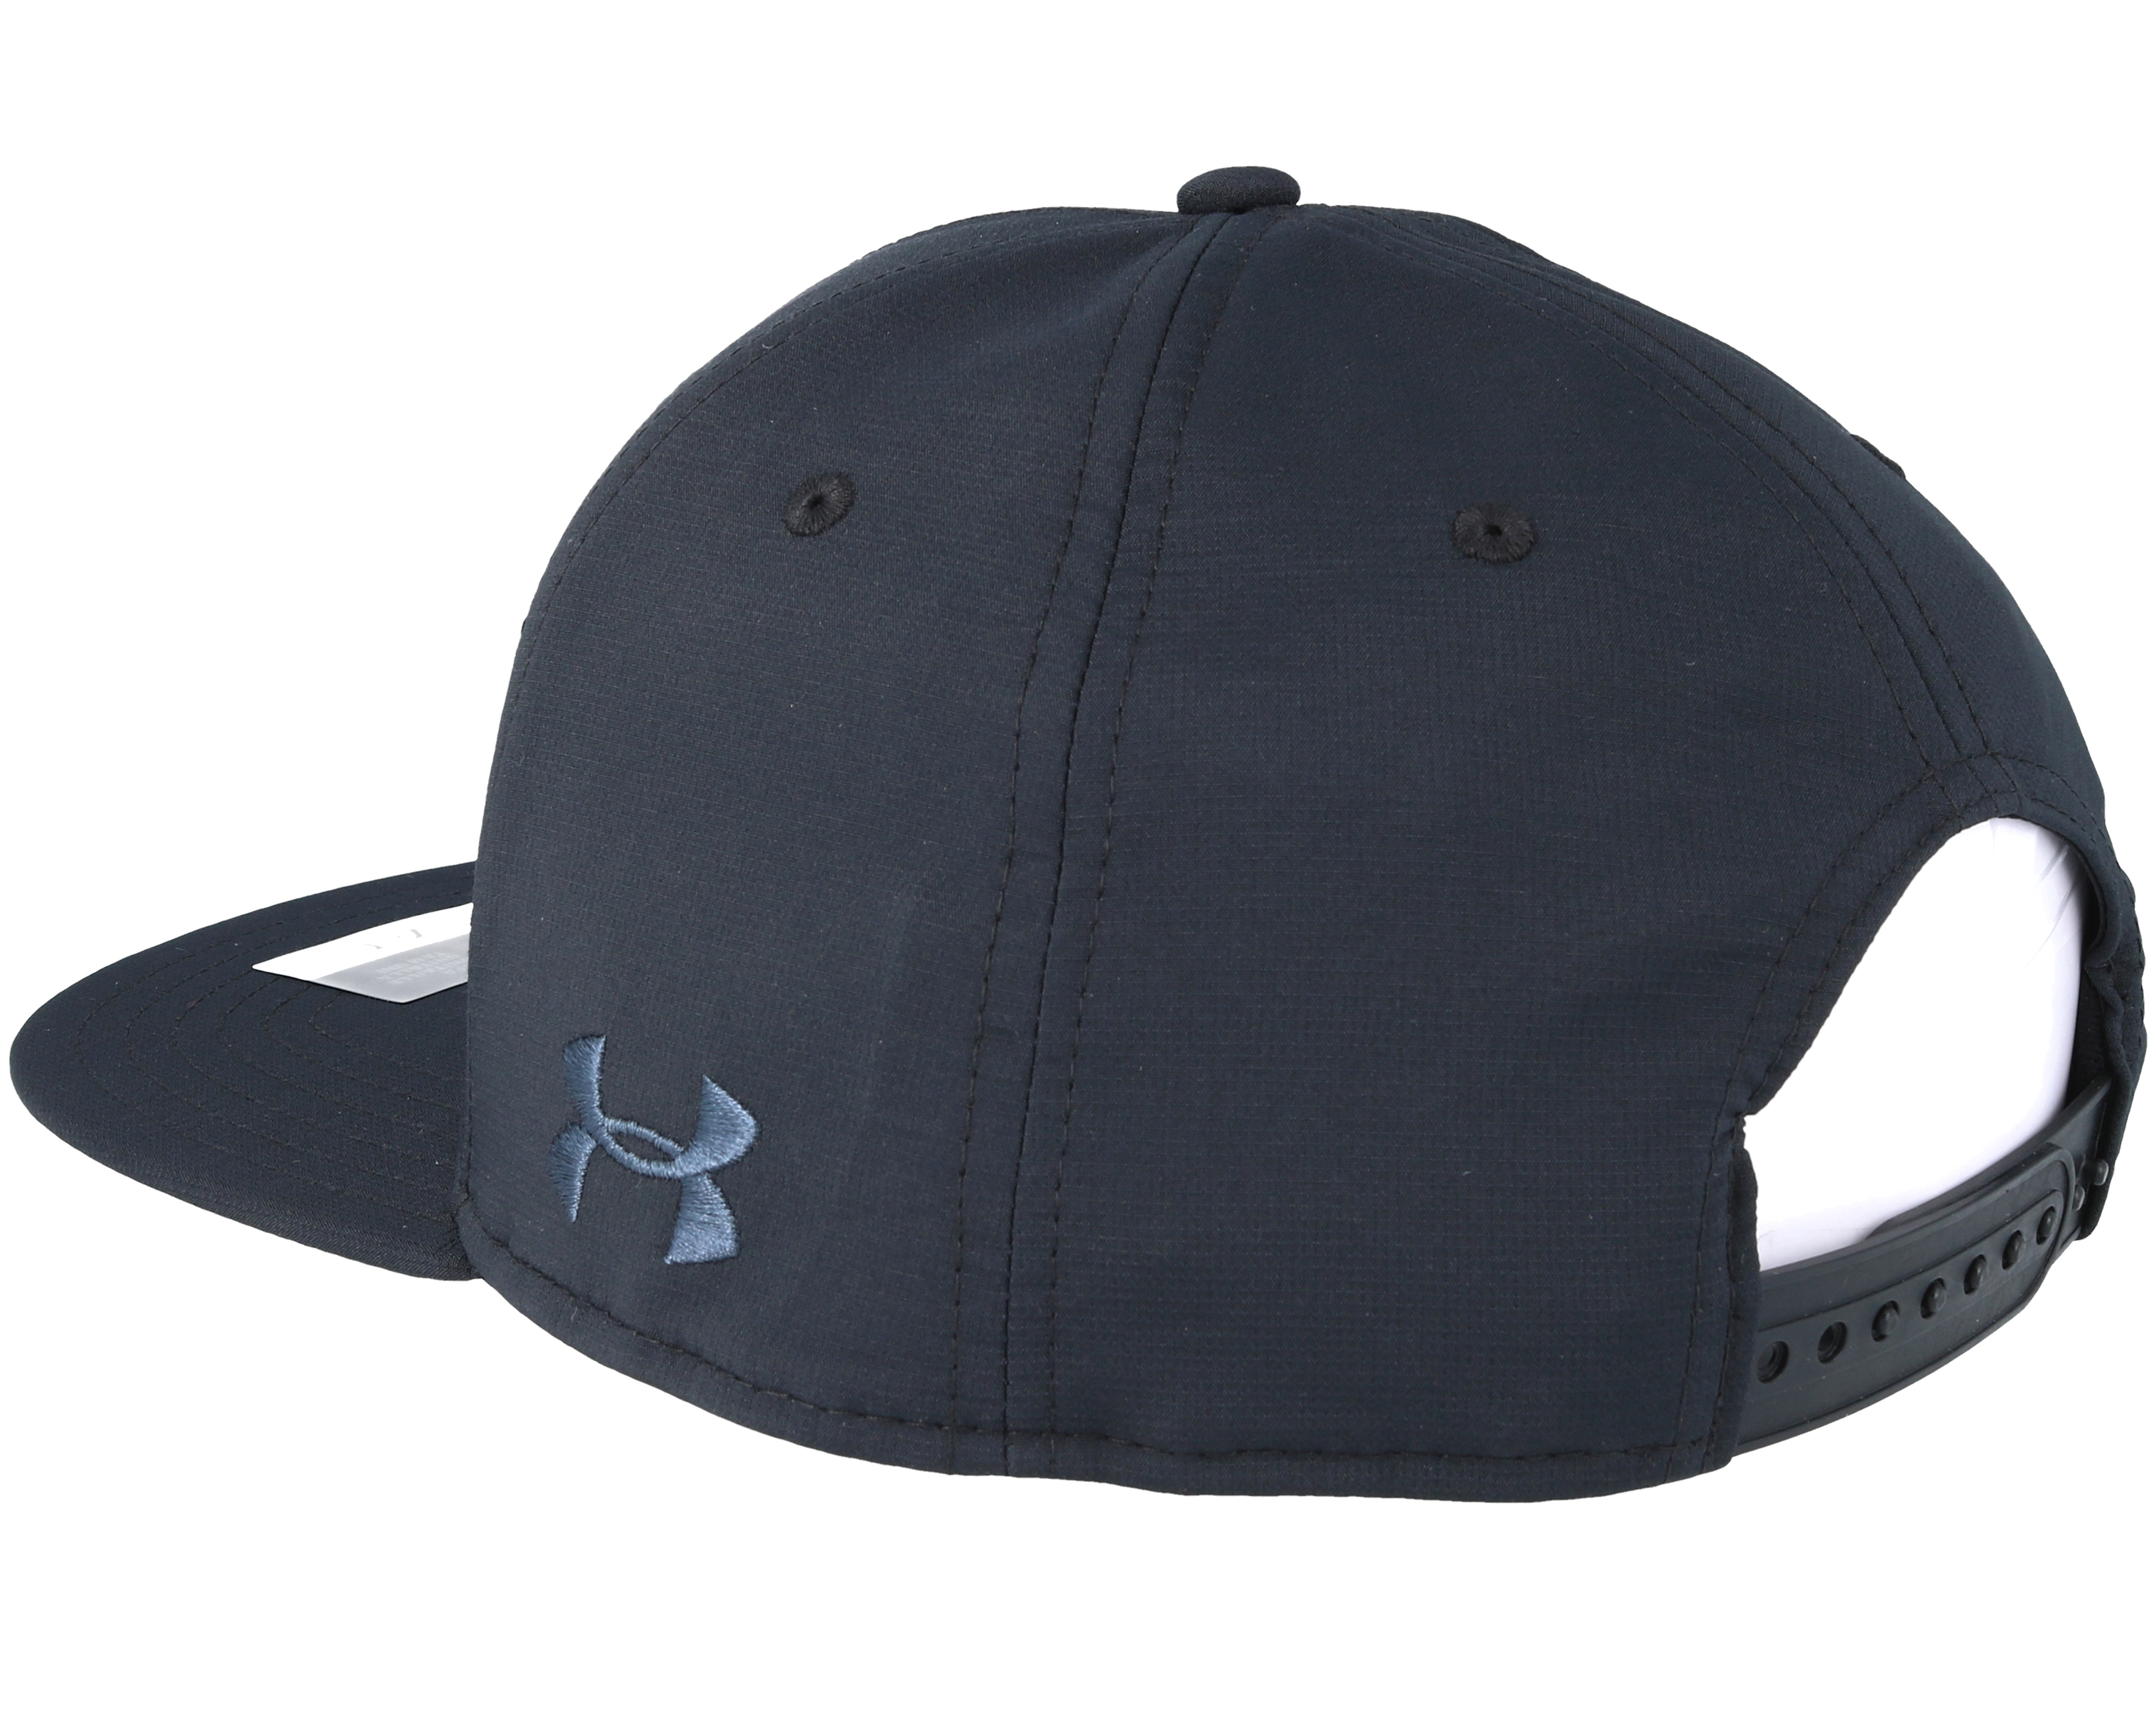 Sc30 Core Black Snapback Under Armour Caps